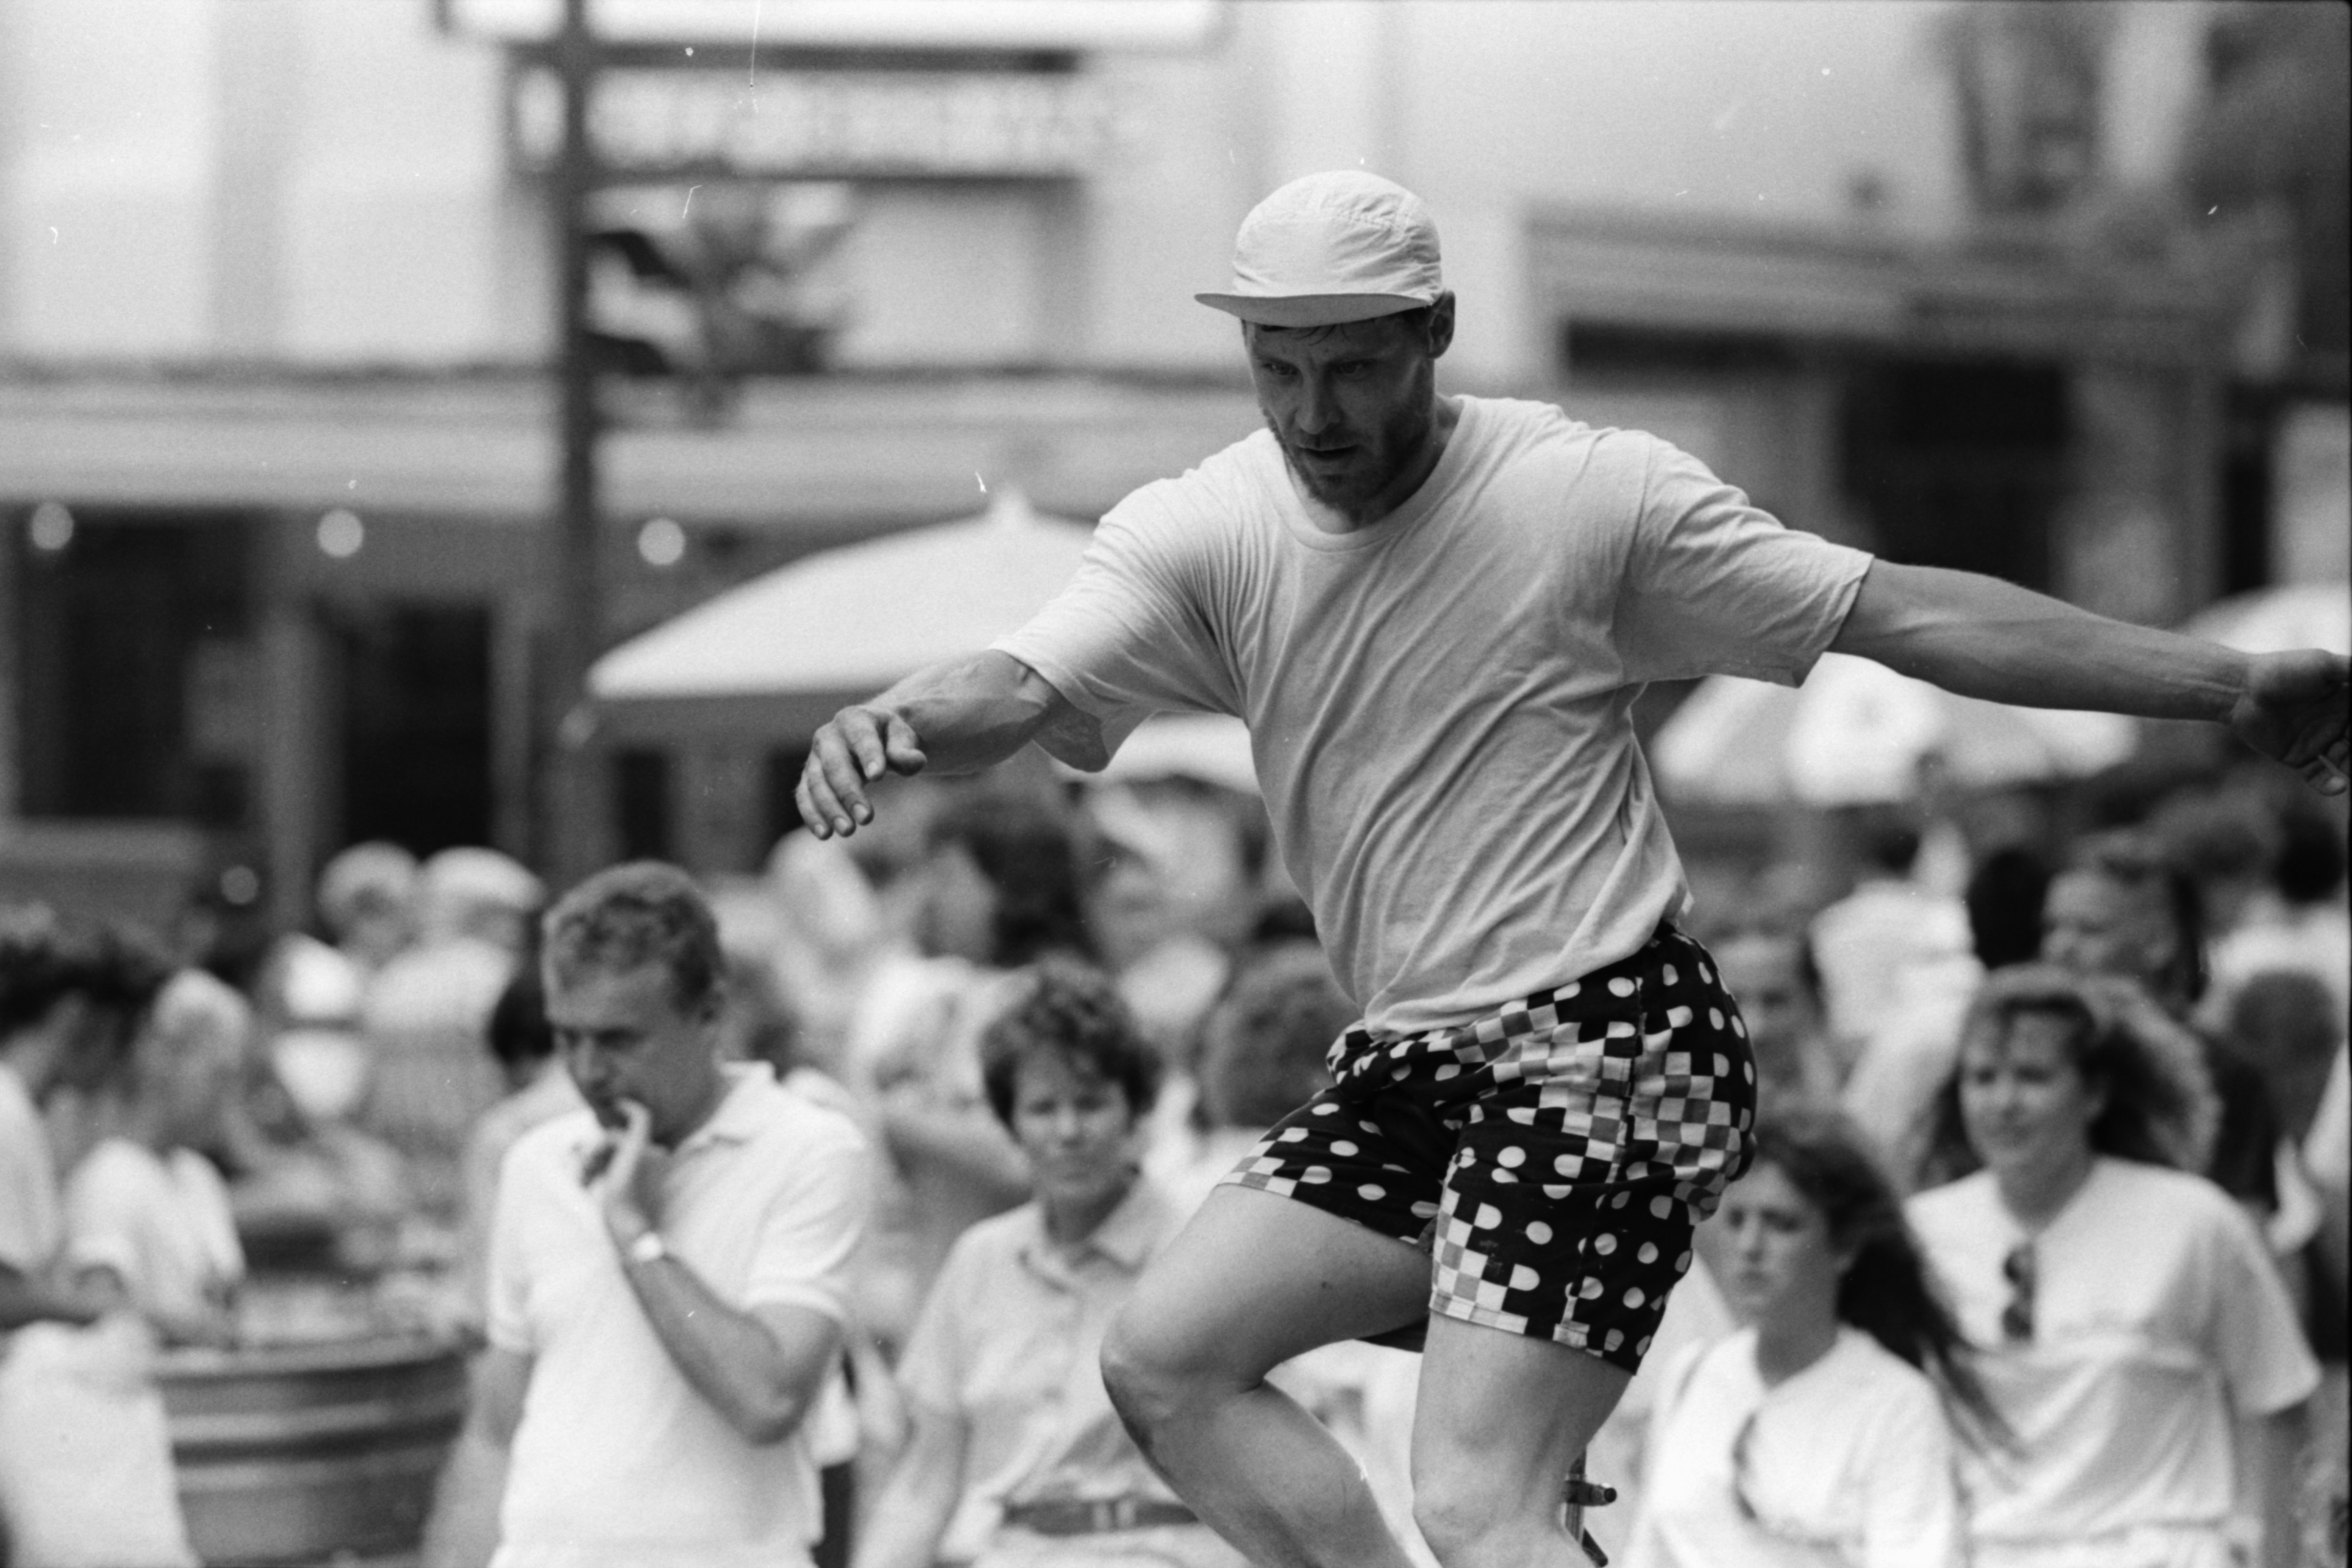 Unicycling on Main St., Taste of Ann Arbor, June 1990 image